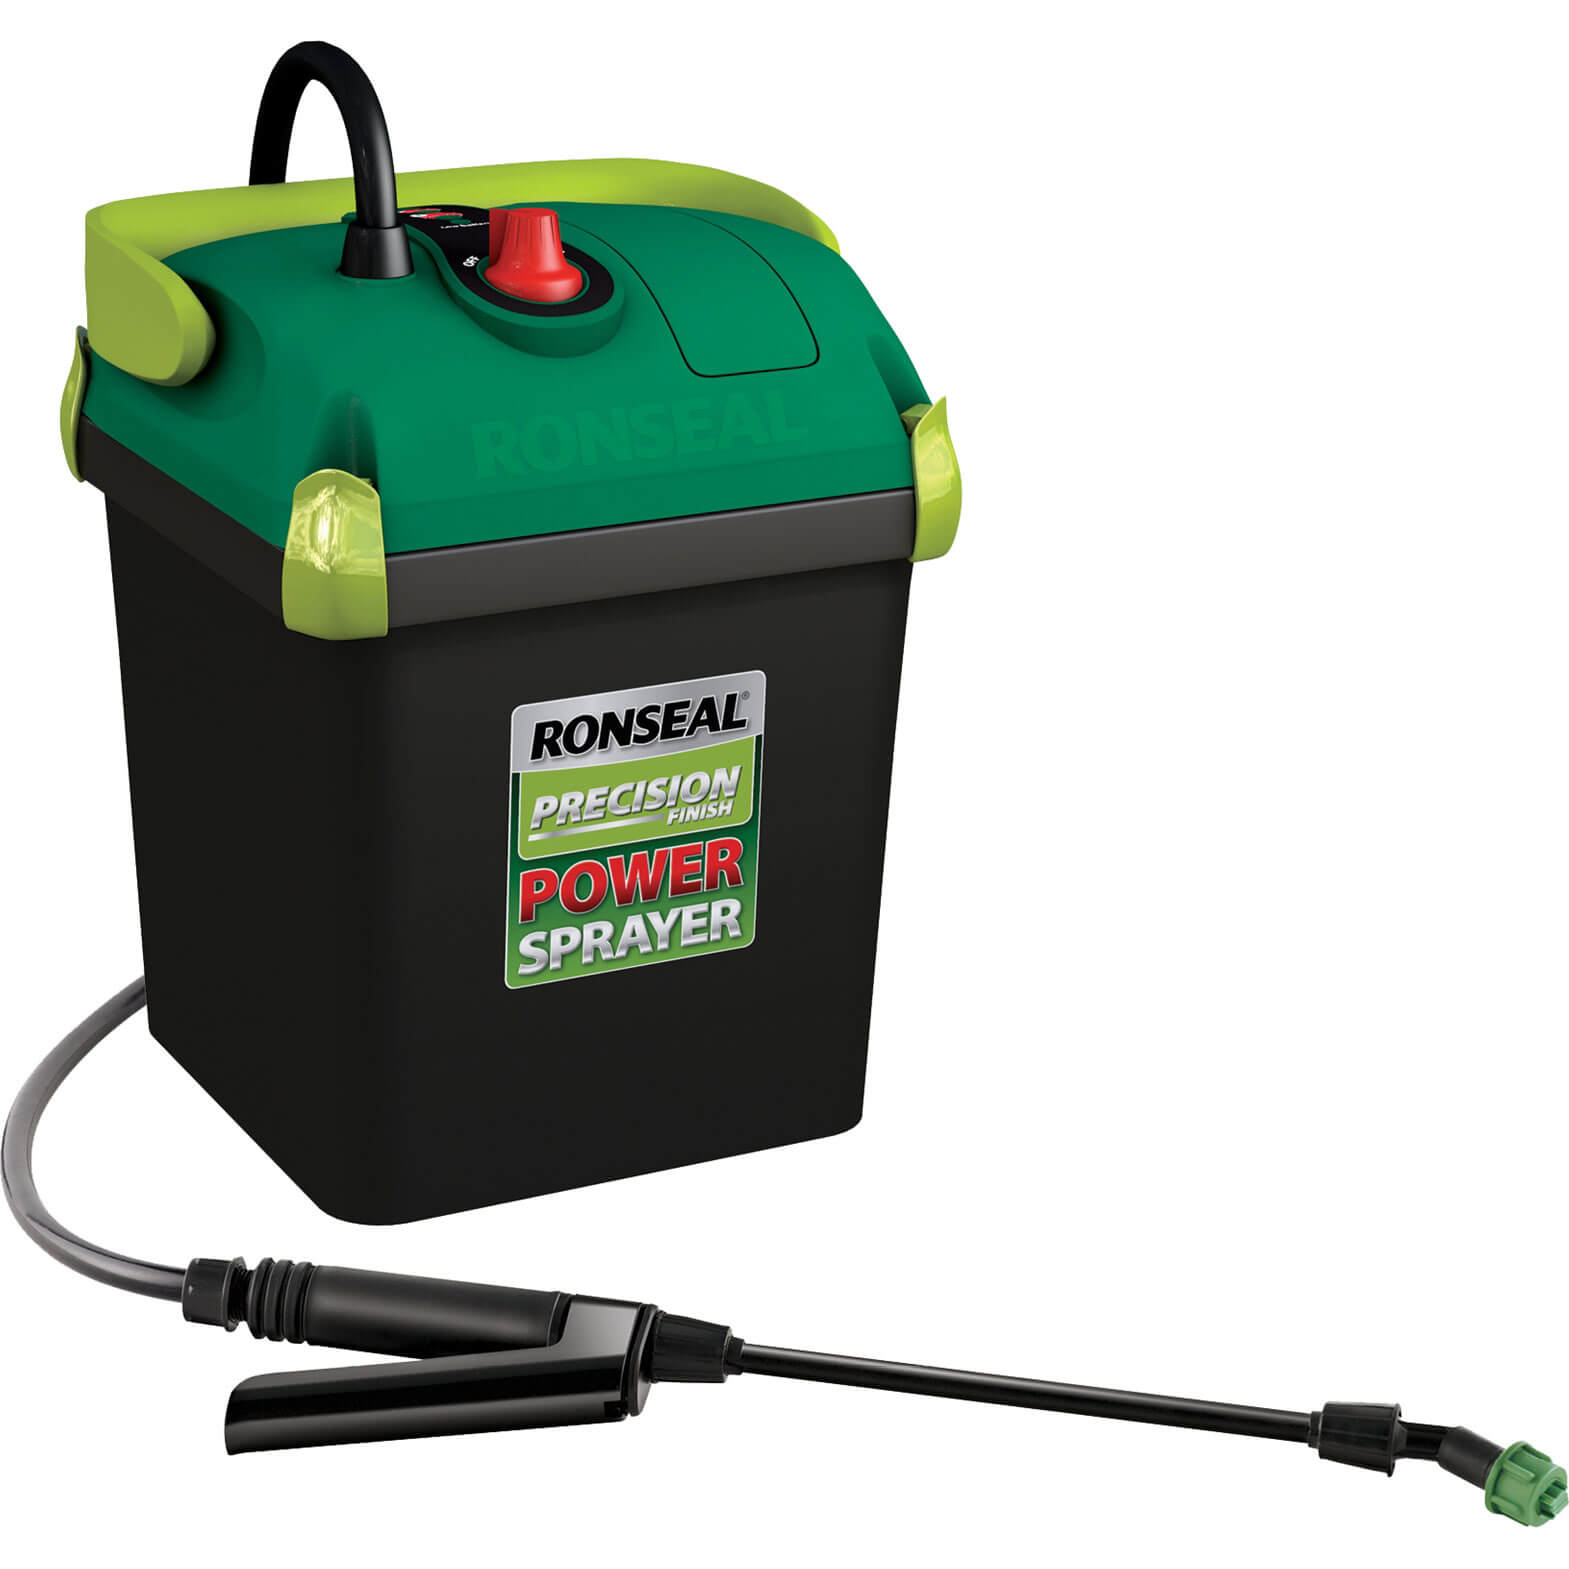 Ronseal Precision Power Paint Sprayer